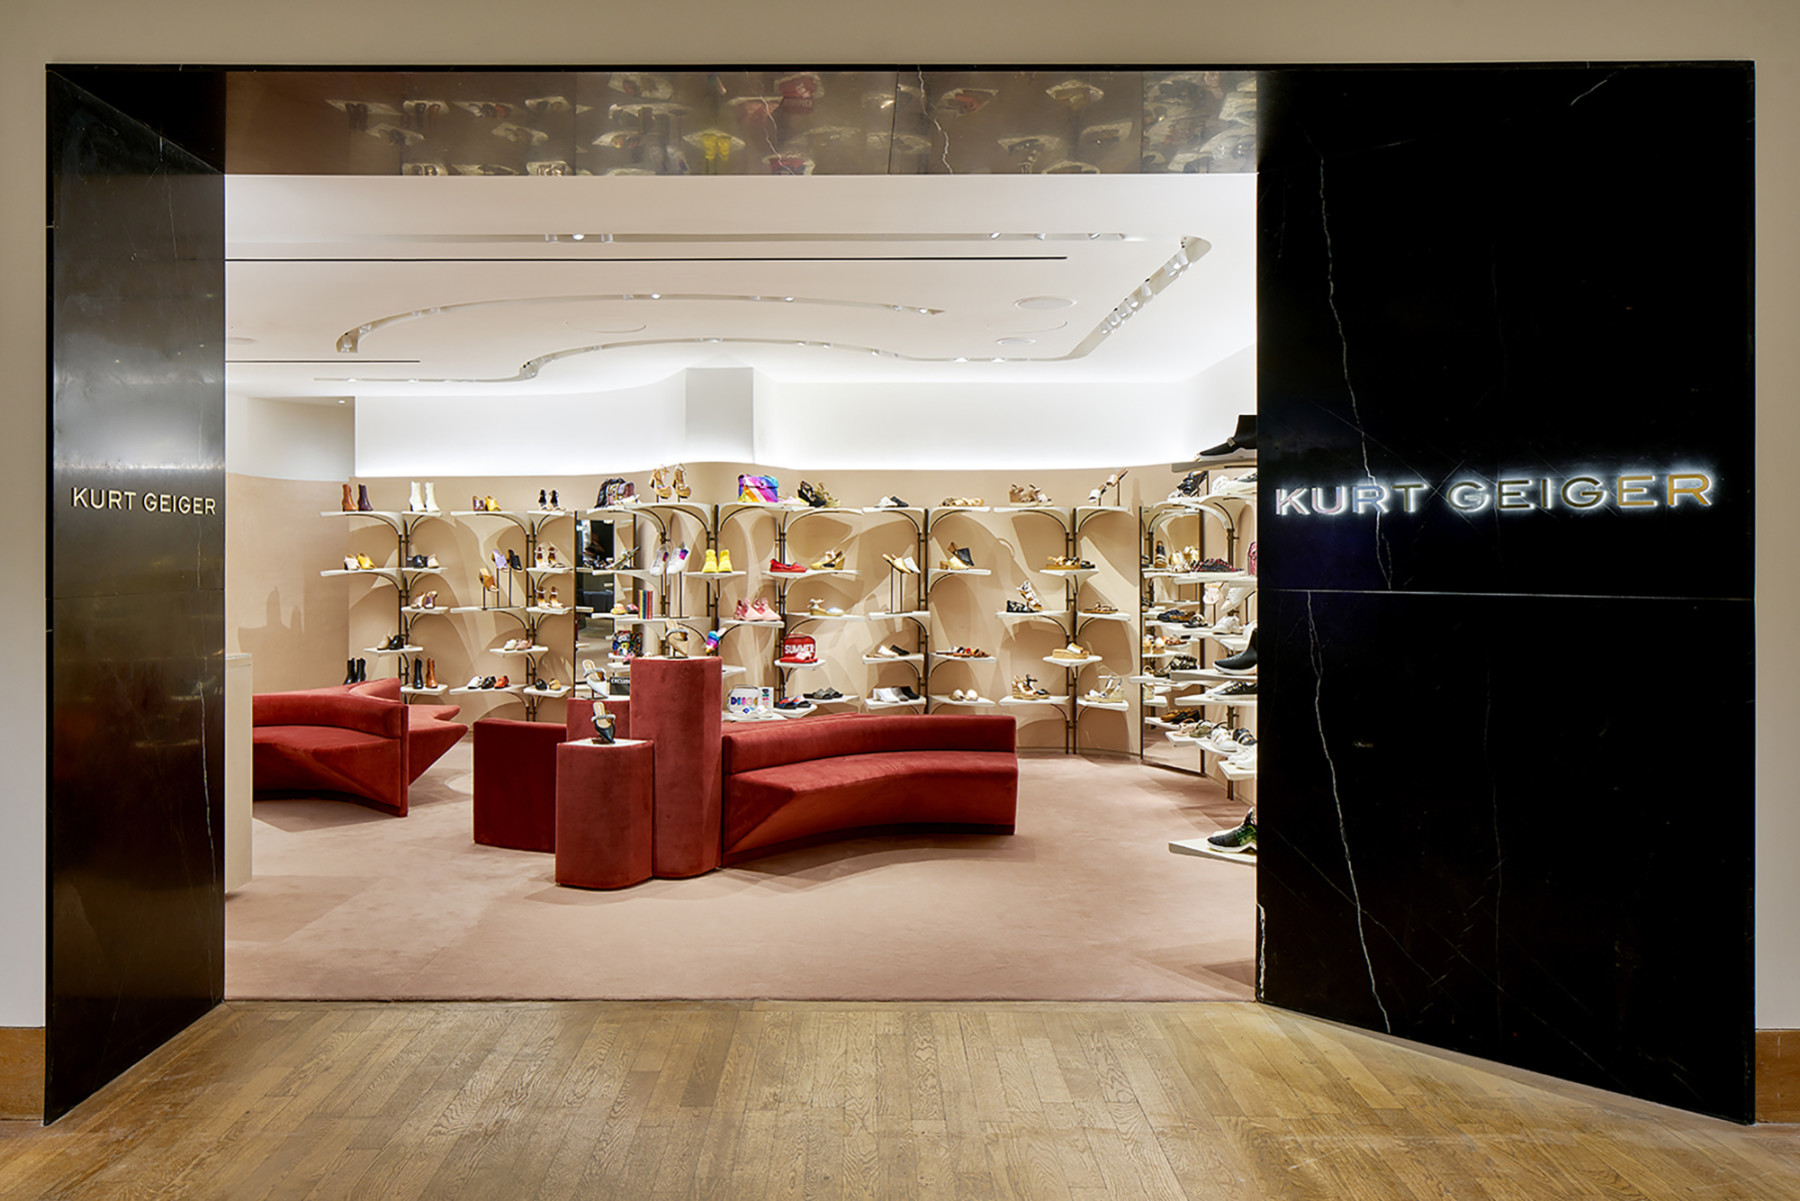 Jamie-Fobert-Architects-Retail-Interiors-Kurt-Geiger-Selfridges-Design-1